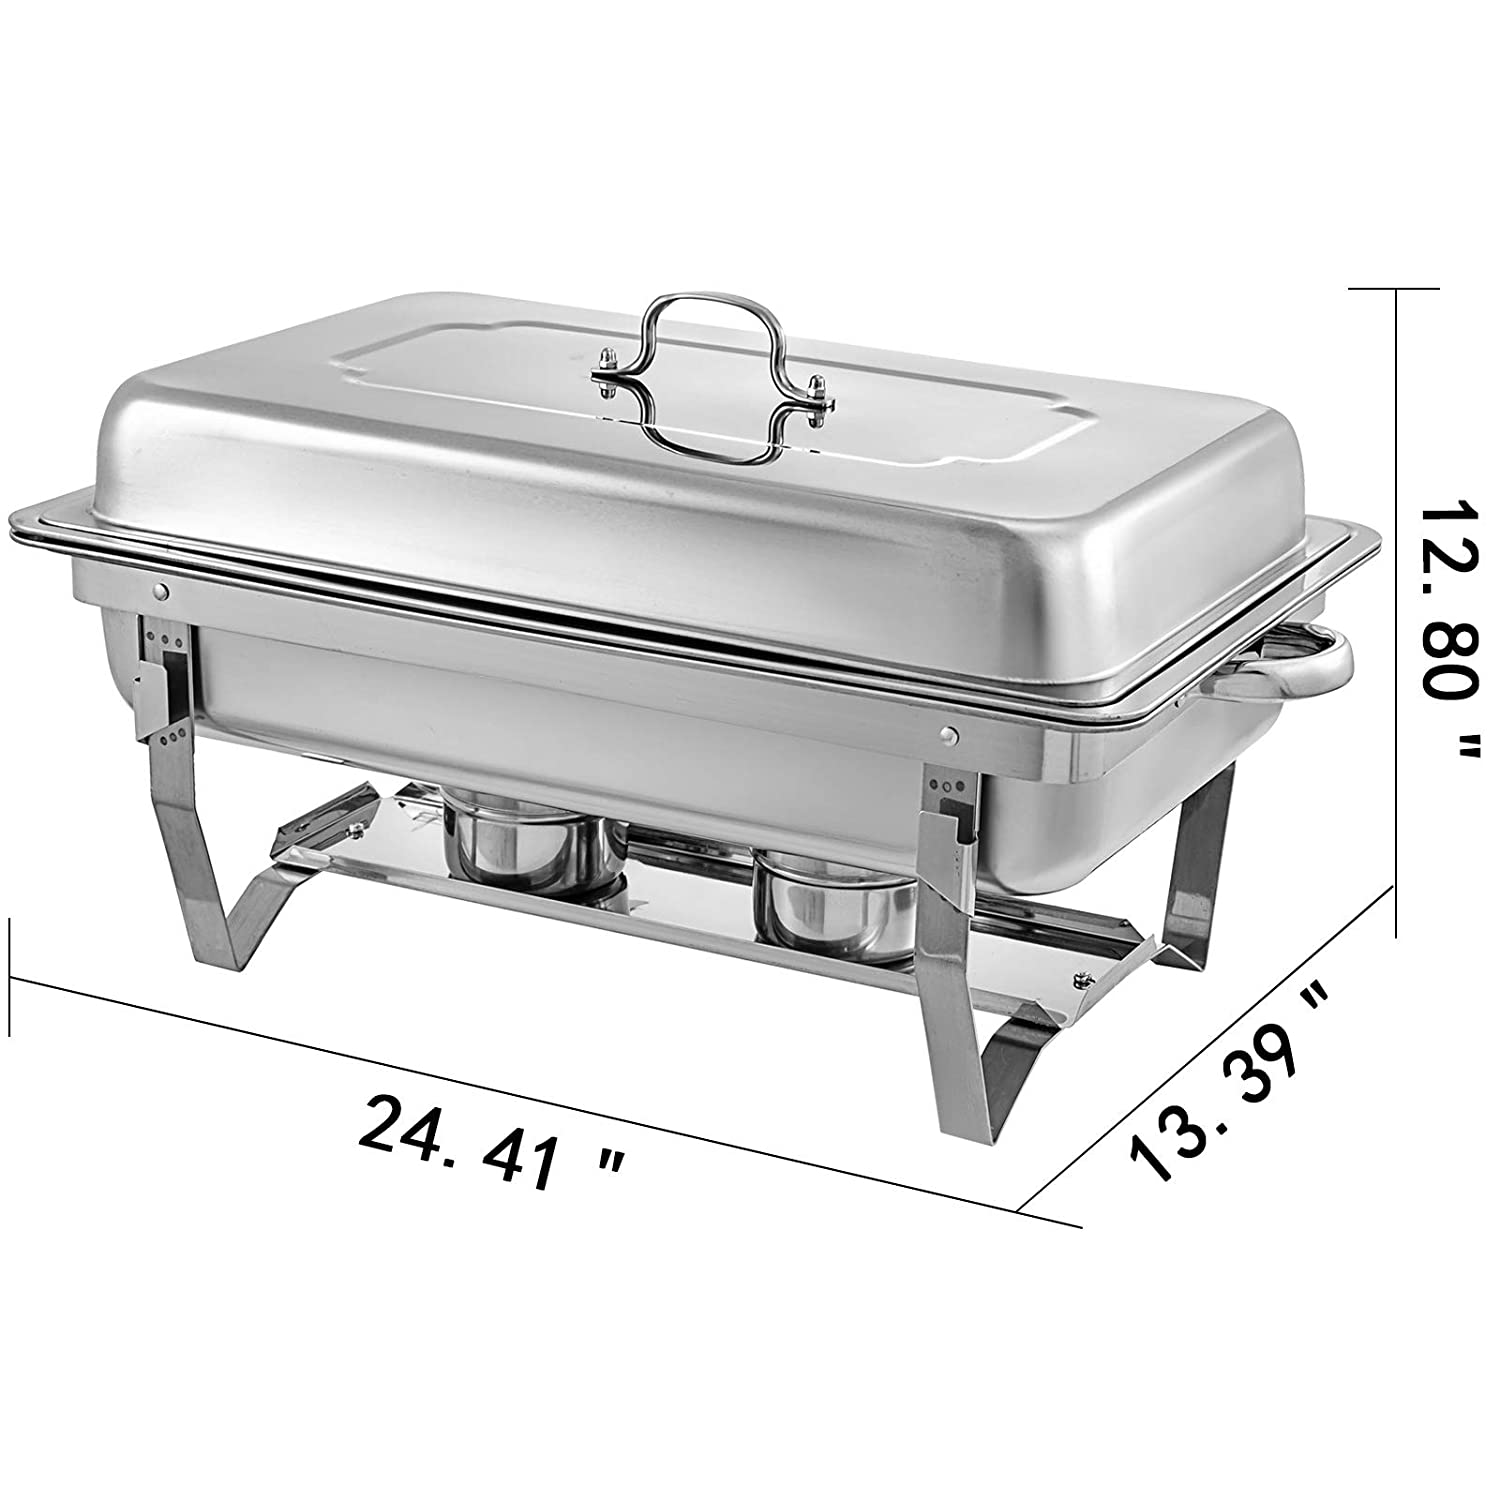 Mophorn Chafing Dish 8 Packs 8 Quart Stainless Steel Chafer Full Size Rectangular Chafers for Catering Buffet Warmer Set with Folding Frame